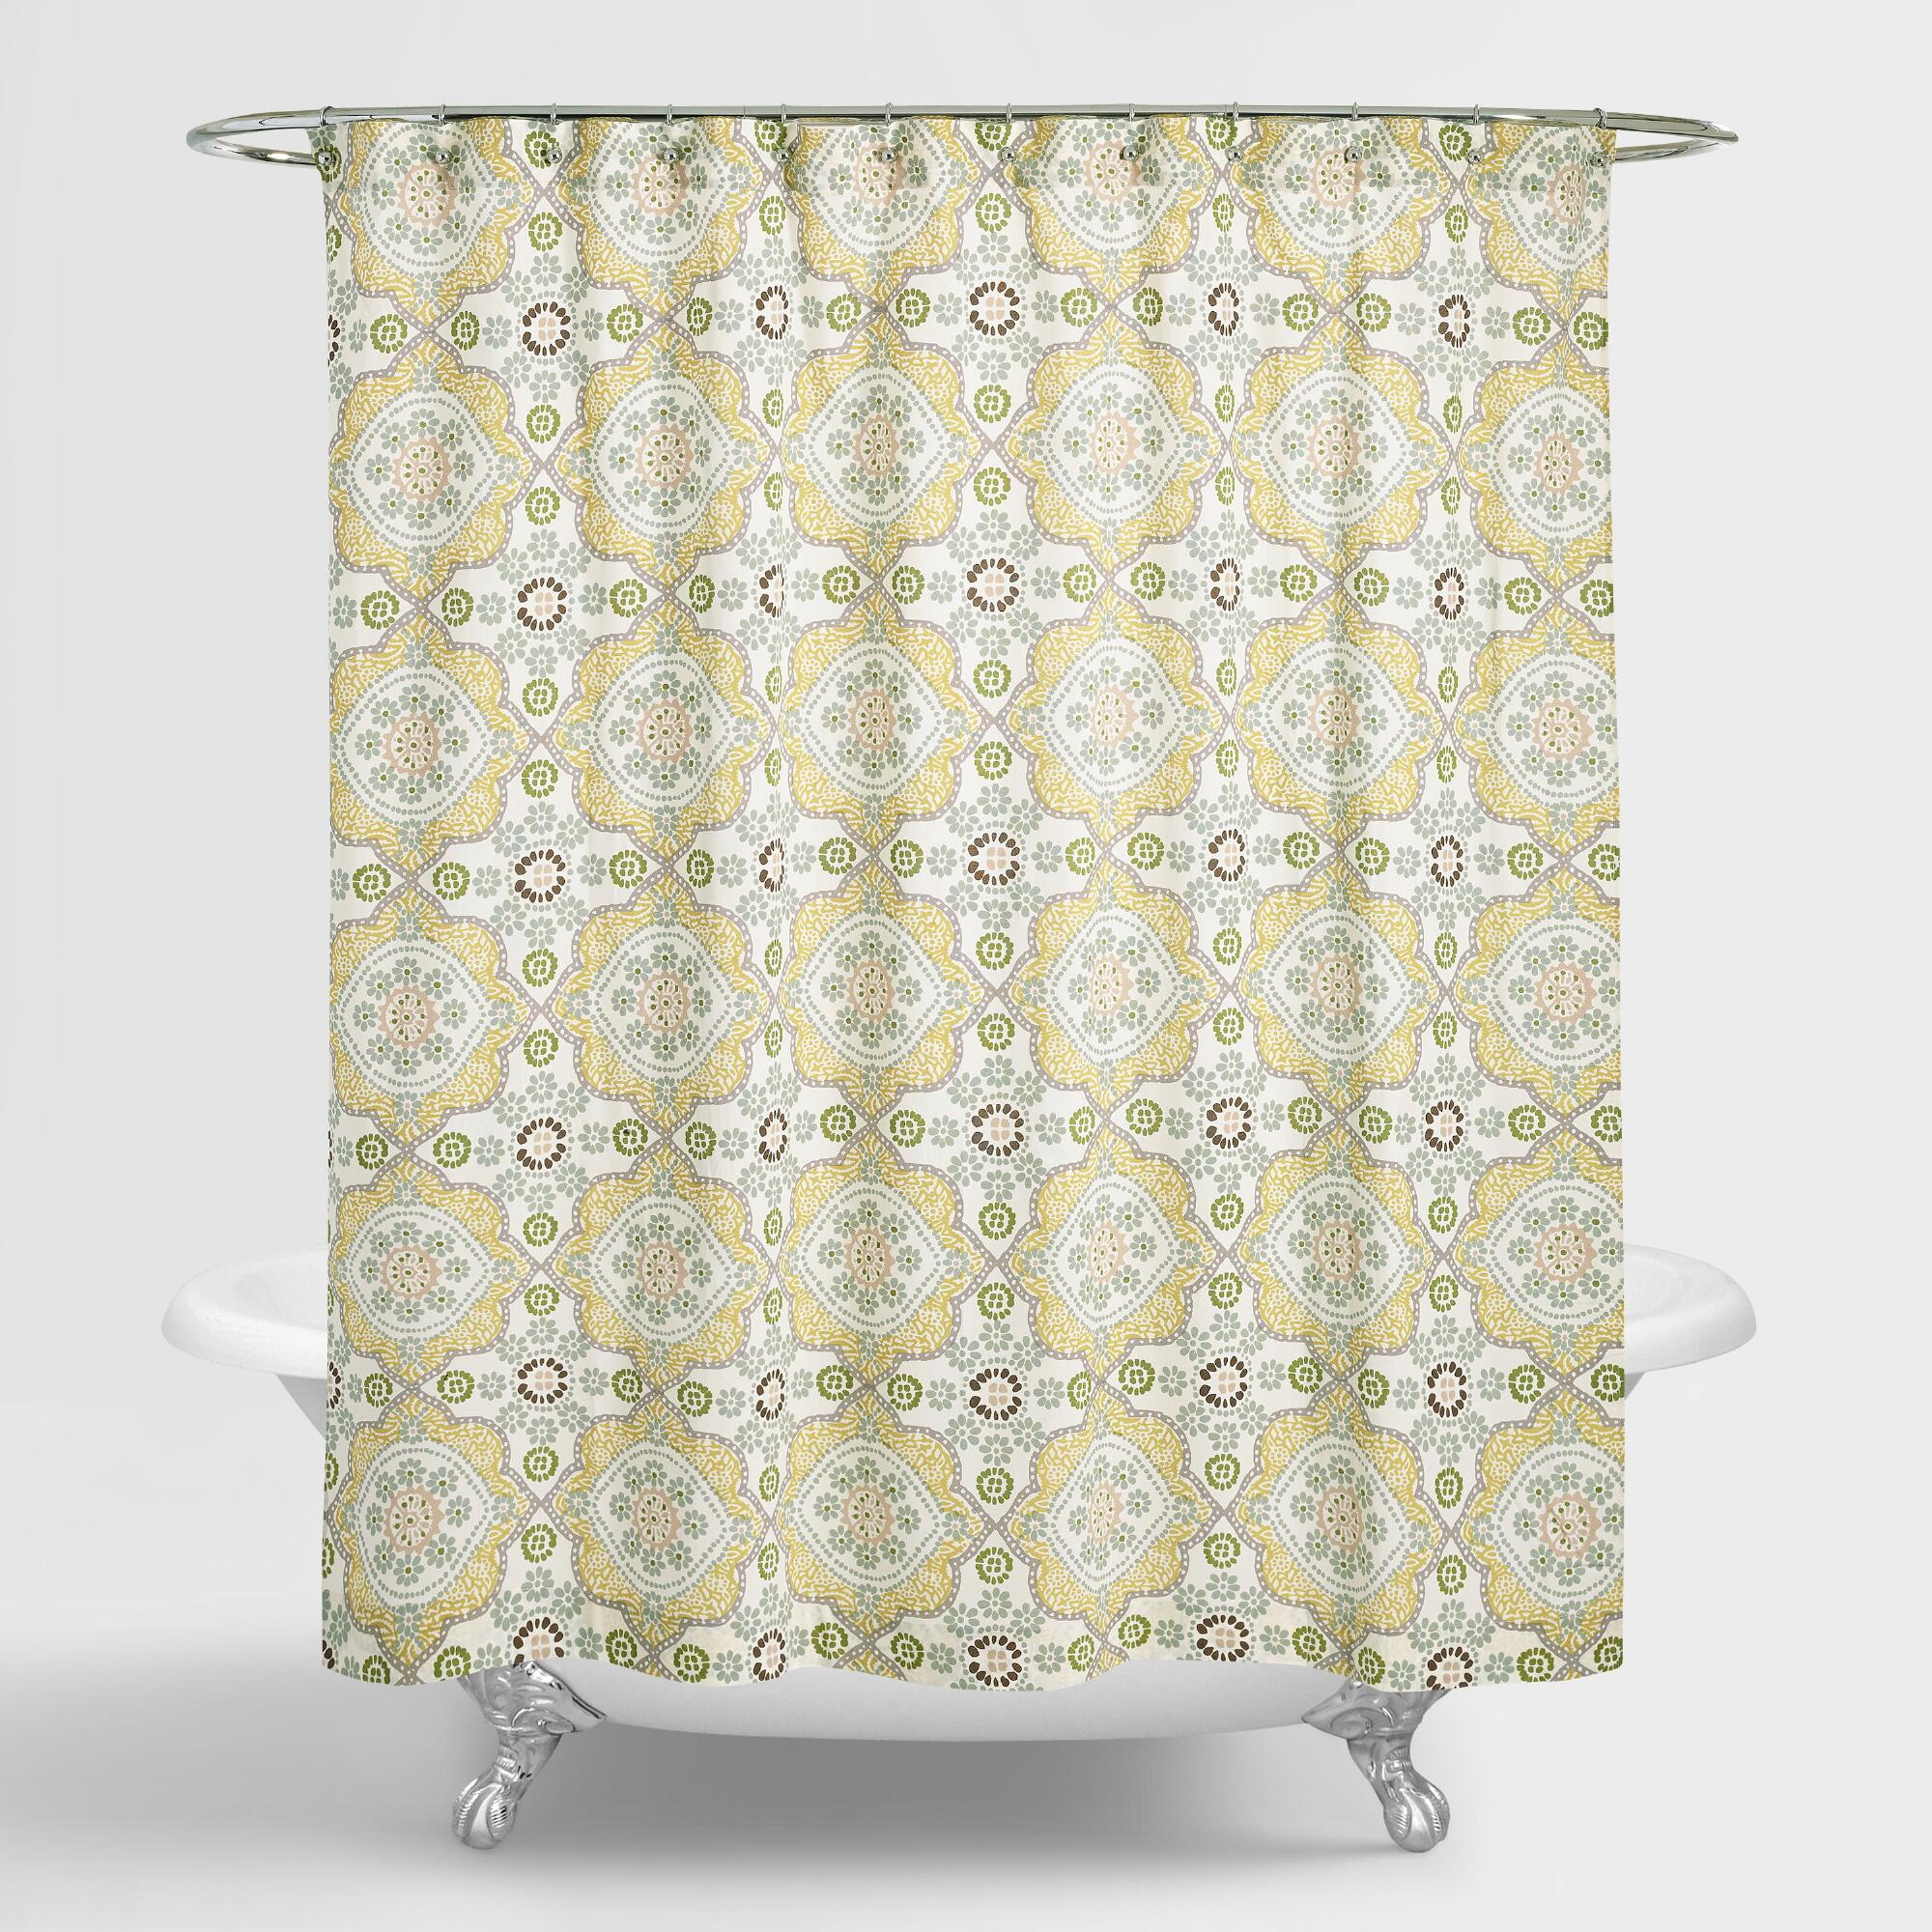 style lounge shower curtain. Mosaic Shower Curtain Curtains  Rings World Market